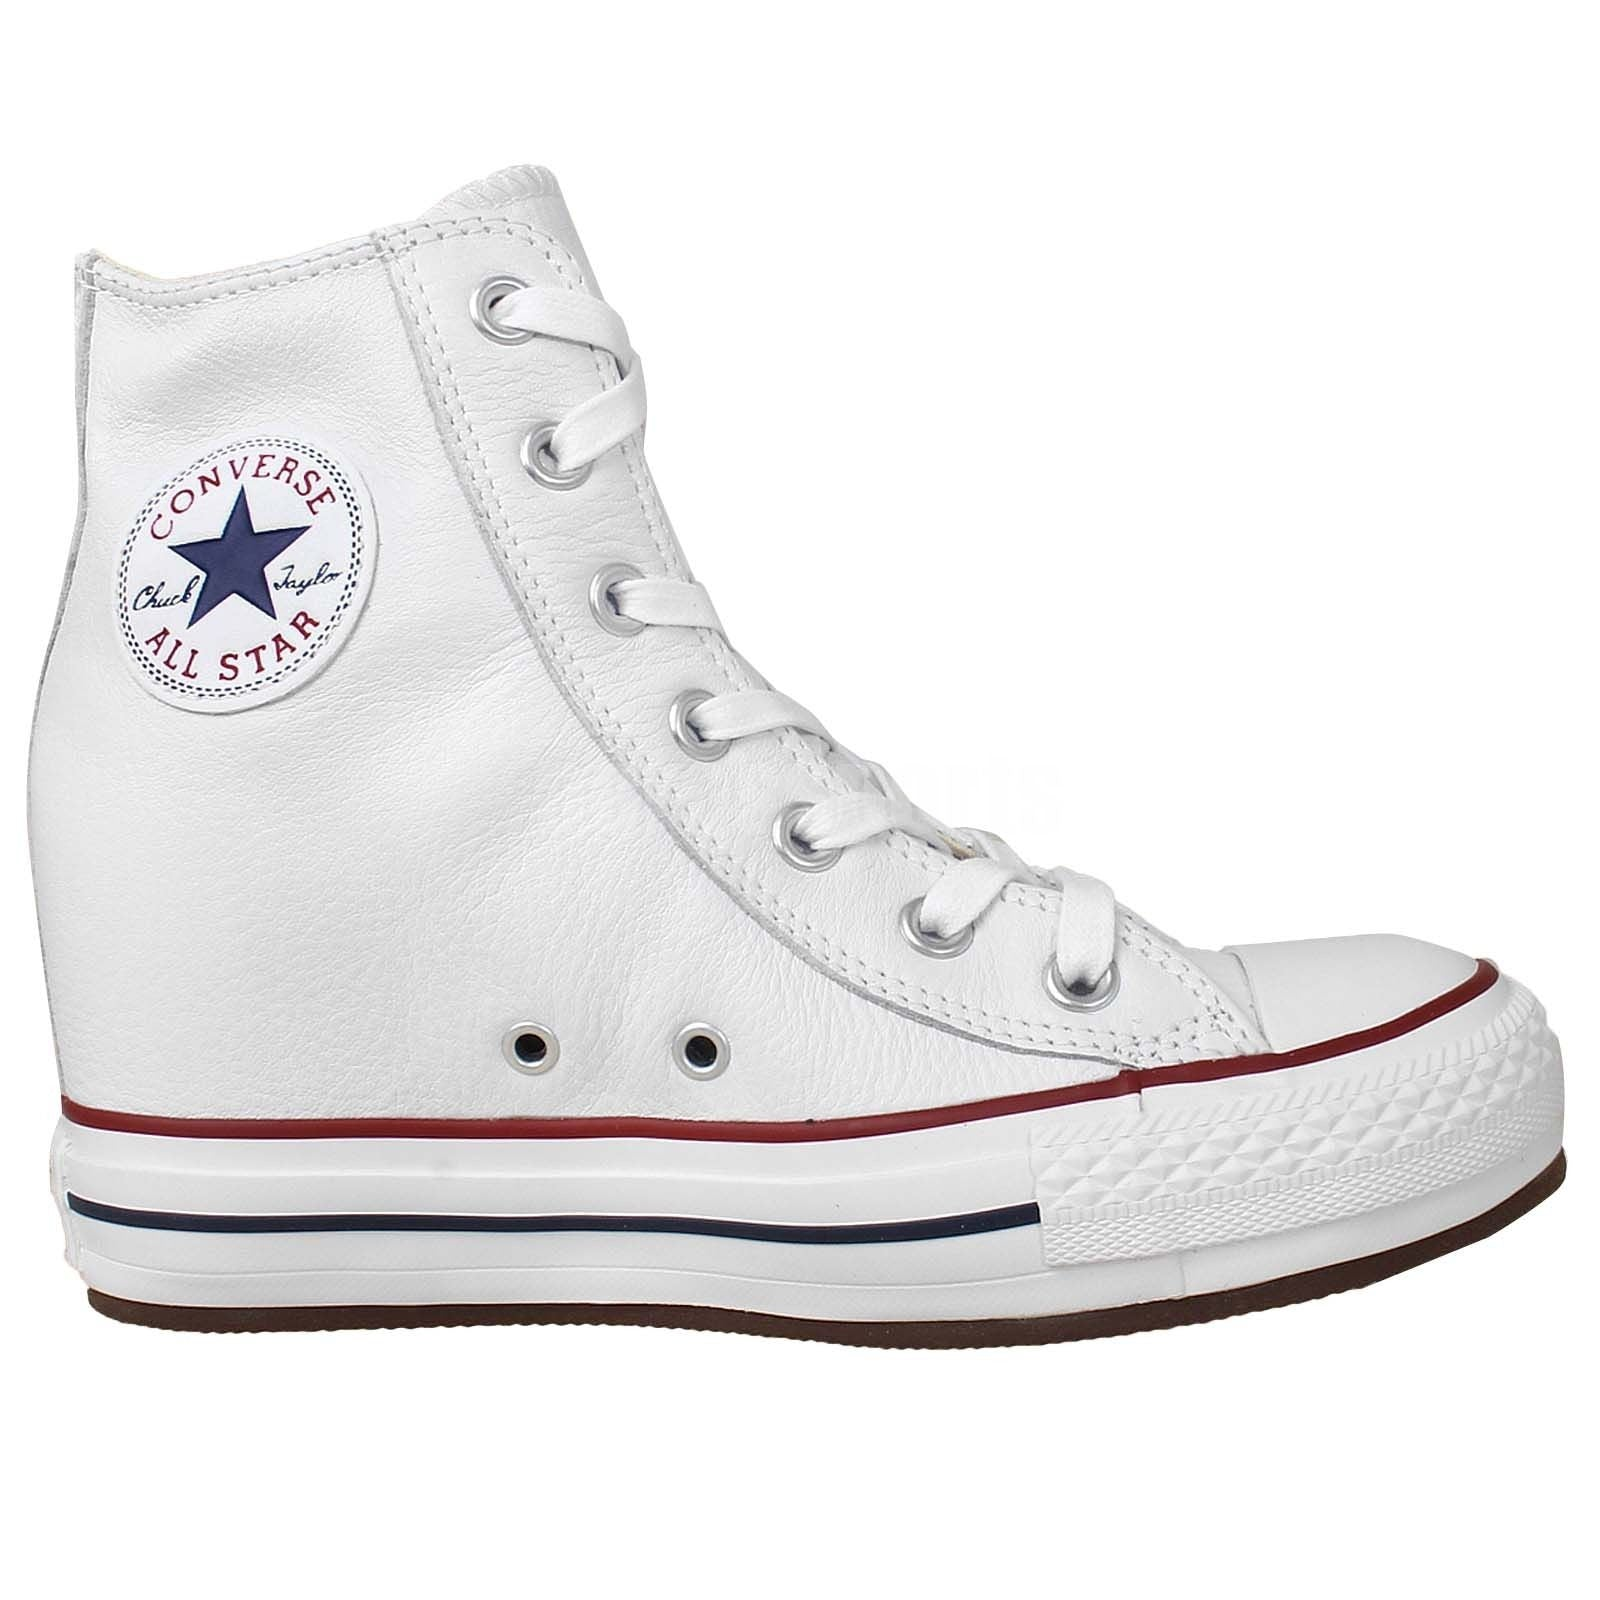 c0efd9ddb44e Converse Chuck Taylor All Star Plat Plus Hi White Leather Wedge 544927C  Soft Leather Famous Rock ...